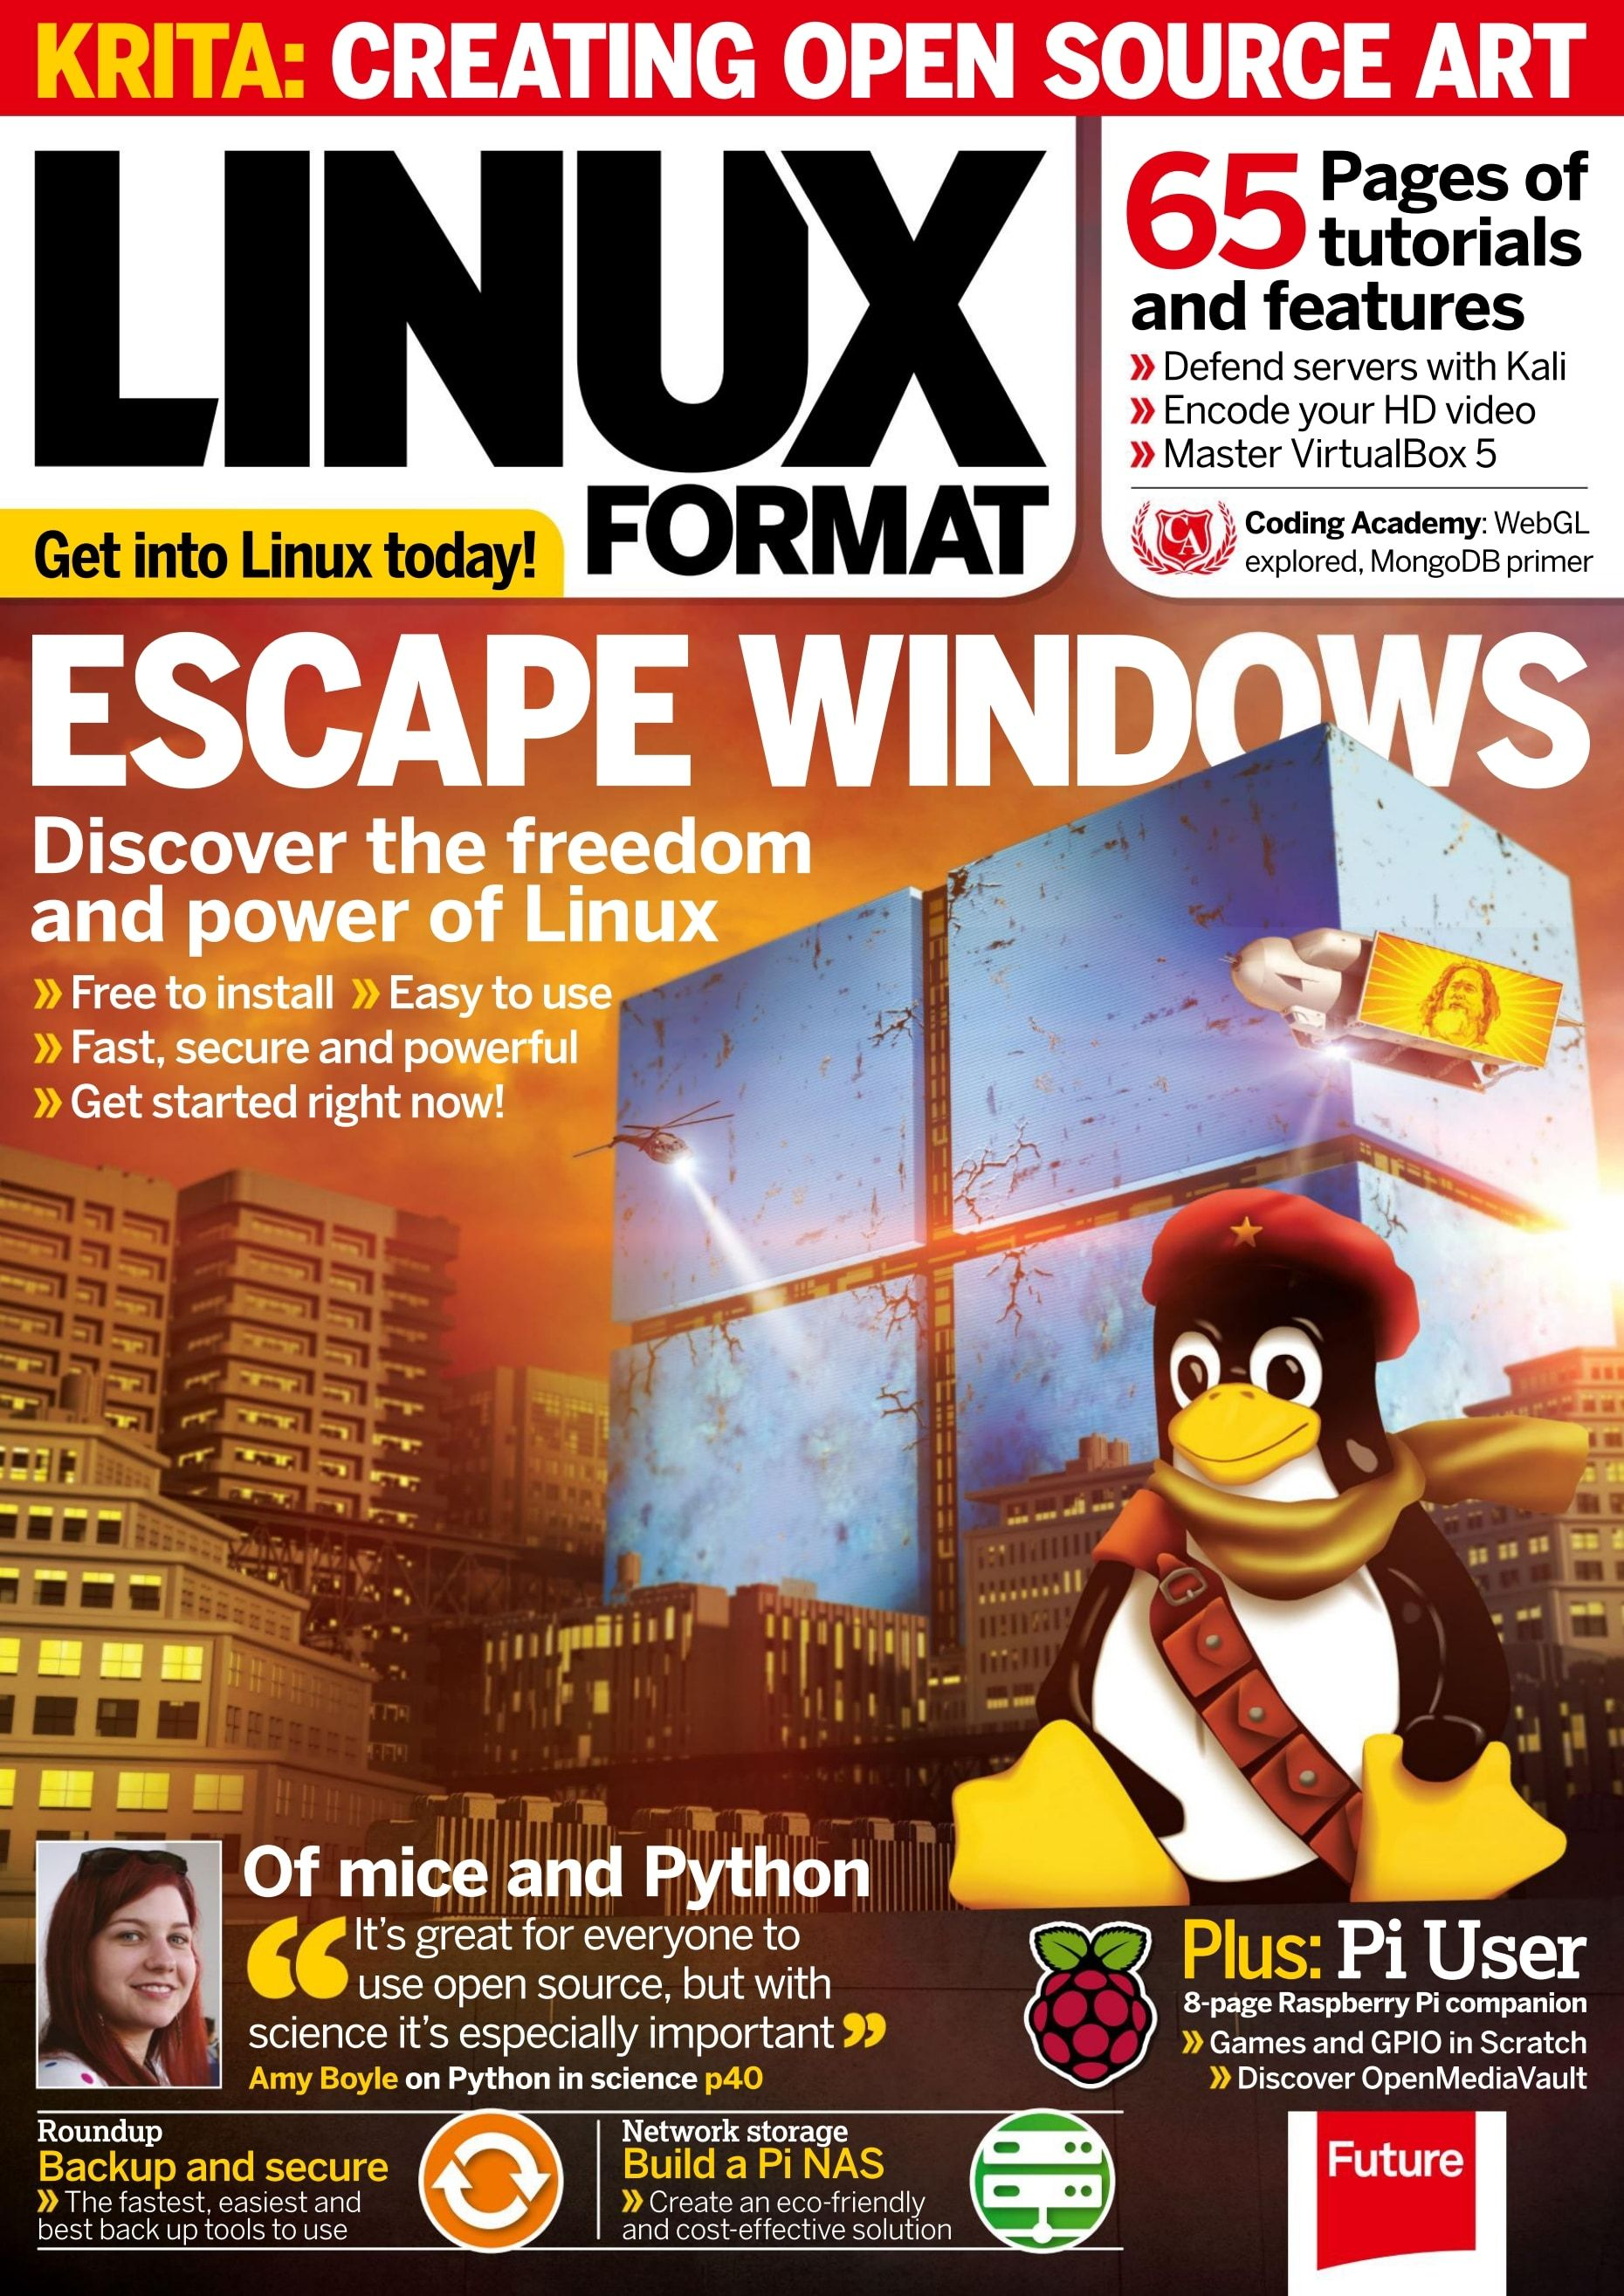 #Linux Format, #February 2016. Escape Windows 10. Tutorials: #Kali Linux, #Zeroshell and more. #WebGL audio visualizer.